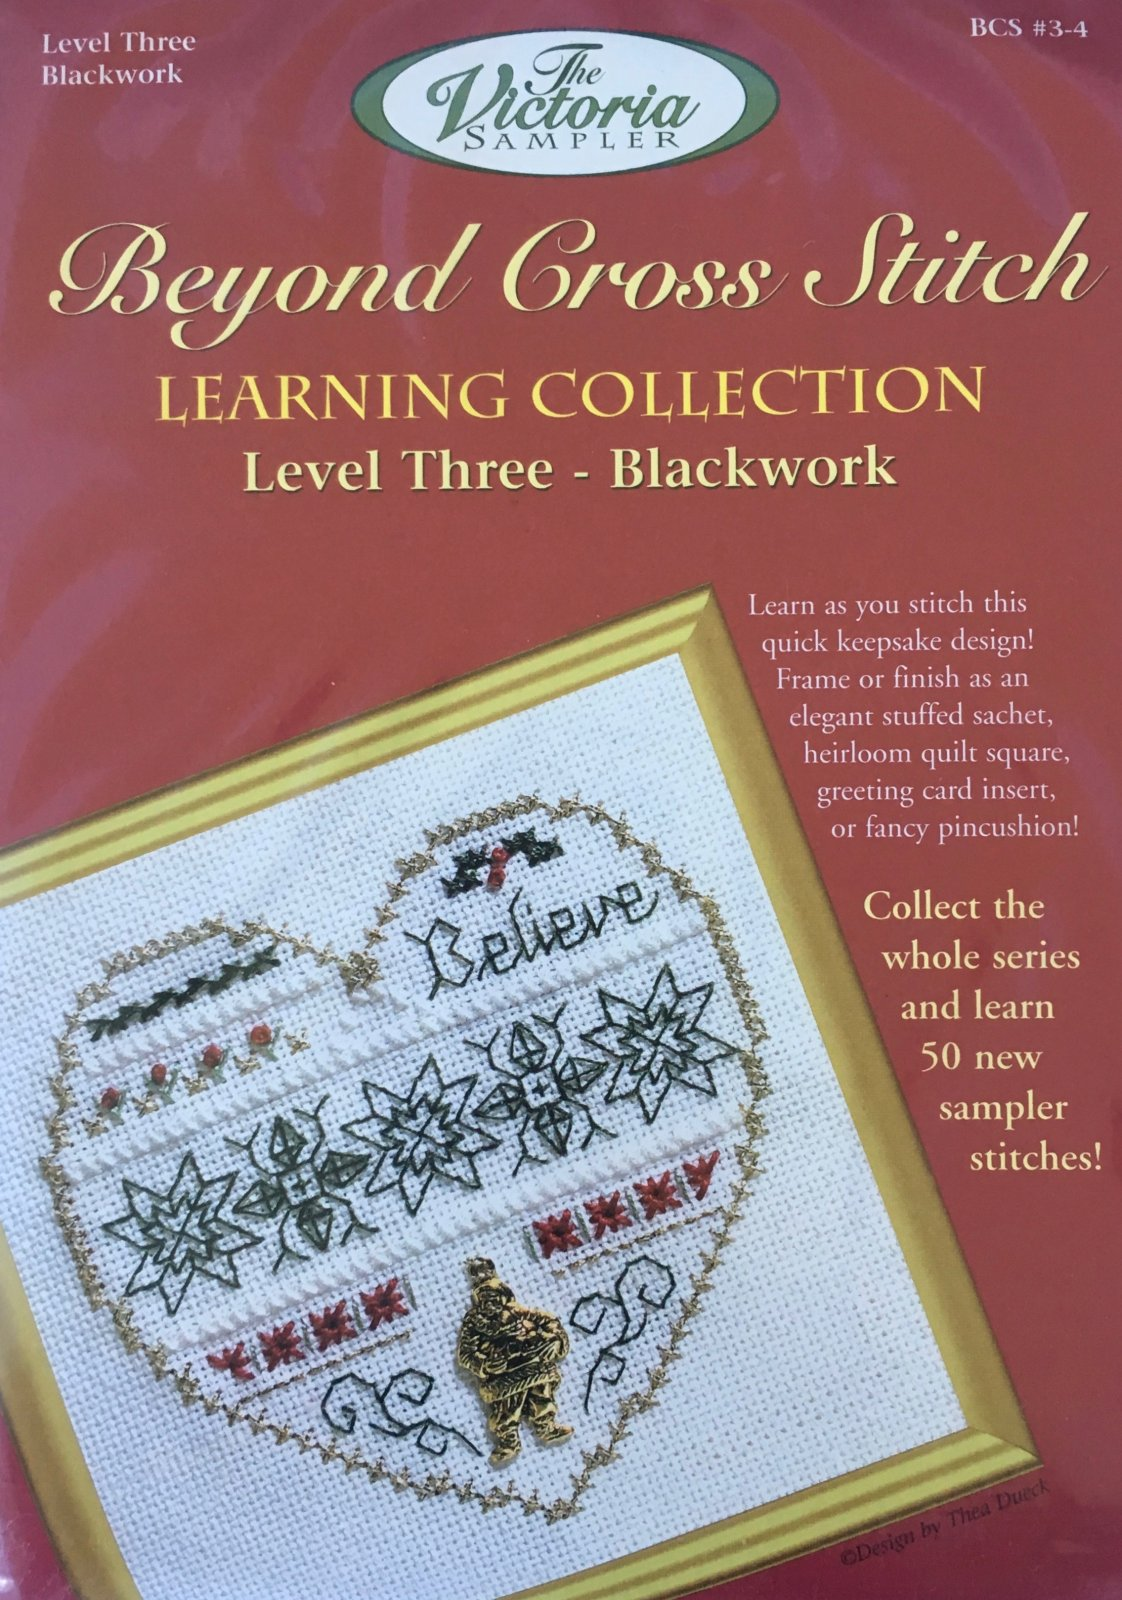 The Victoria Sampler: Believe Level 3 - #4 Kit; Blackwork